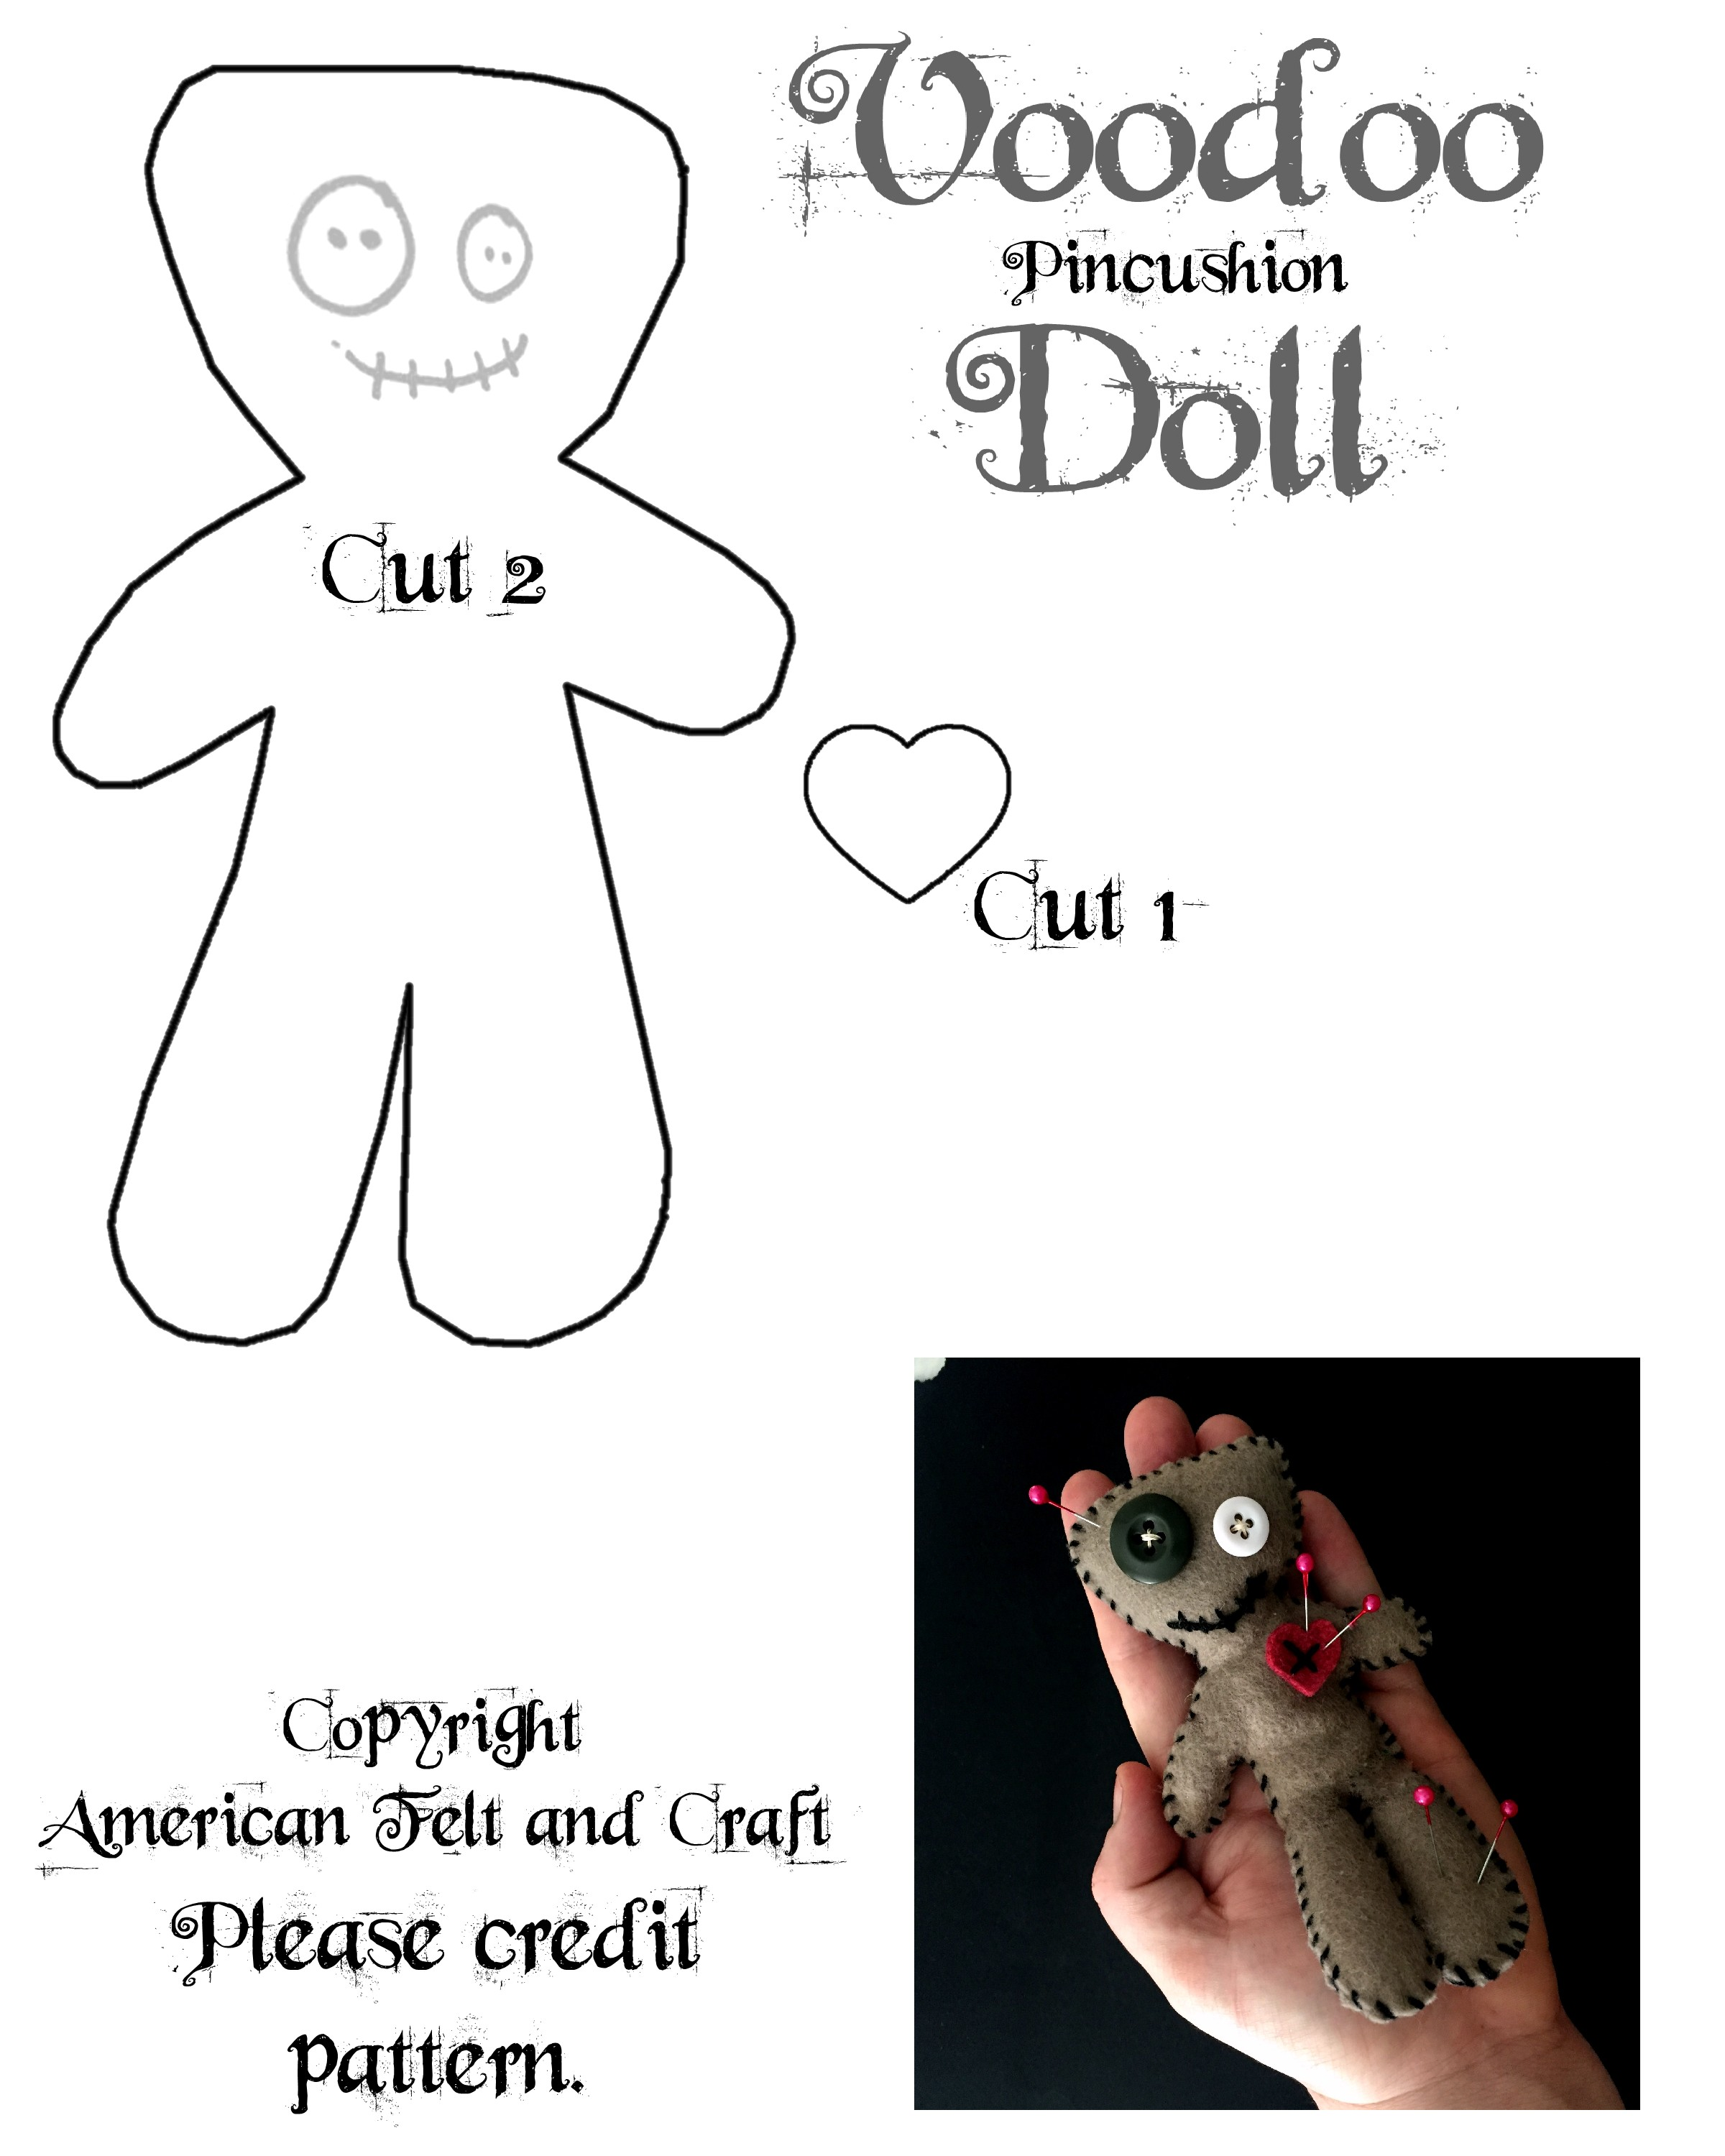 image about Free Printable Felt Doll Patterns referred to as Felt Voodoo Doll Pincushion ~American Felt Craft ~ Blog site